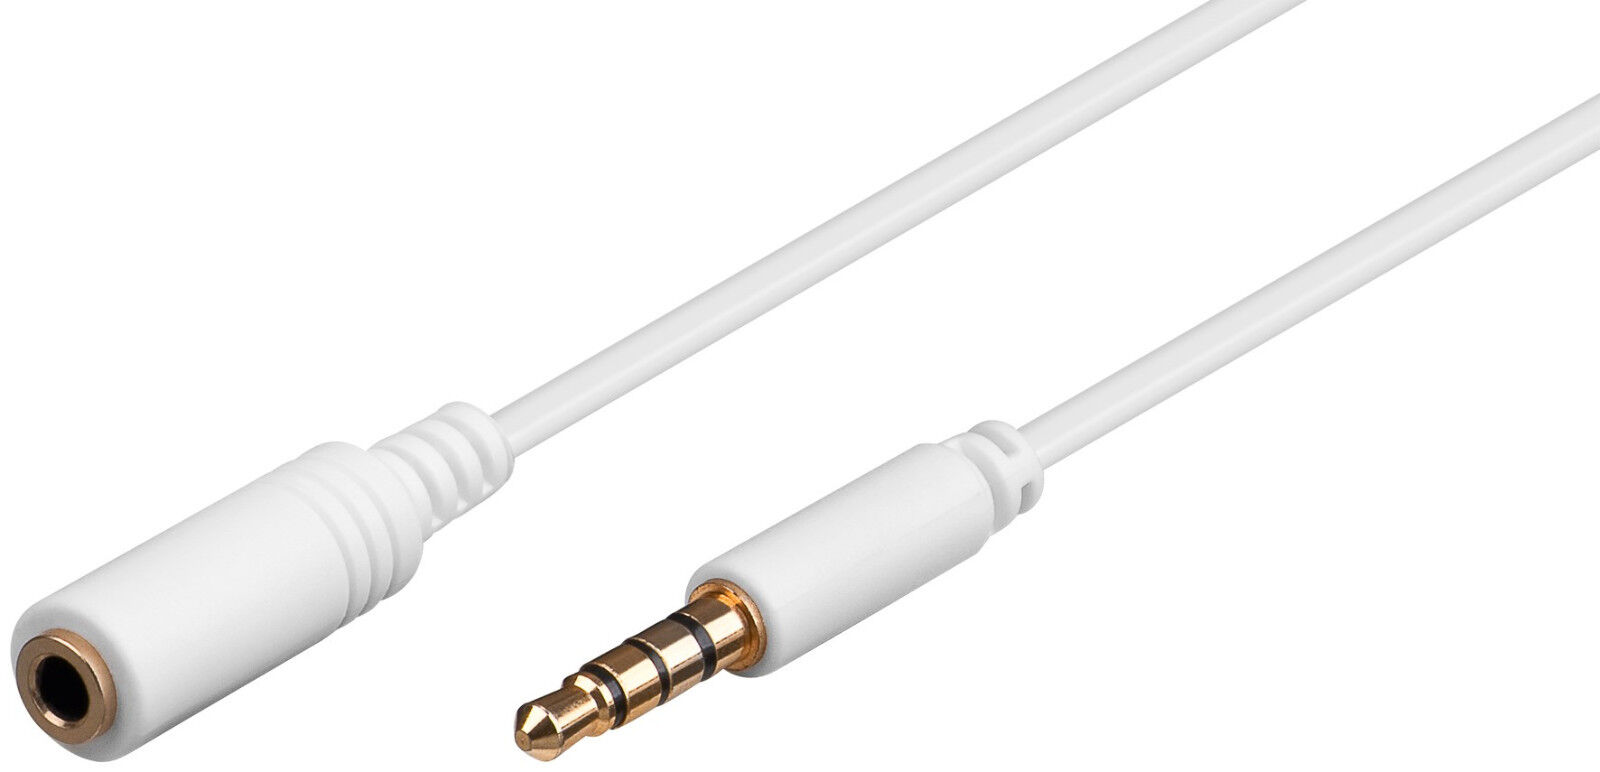 Extension Cable 3,5mm Jack Plug Stereo 4 Pin For Headphones Cables